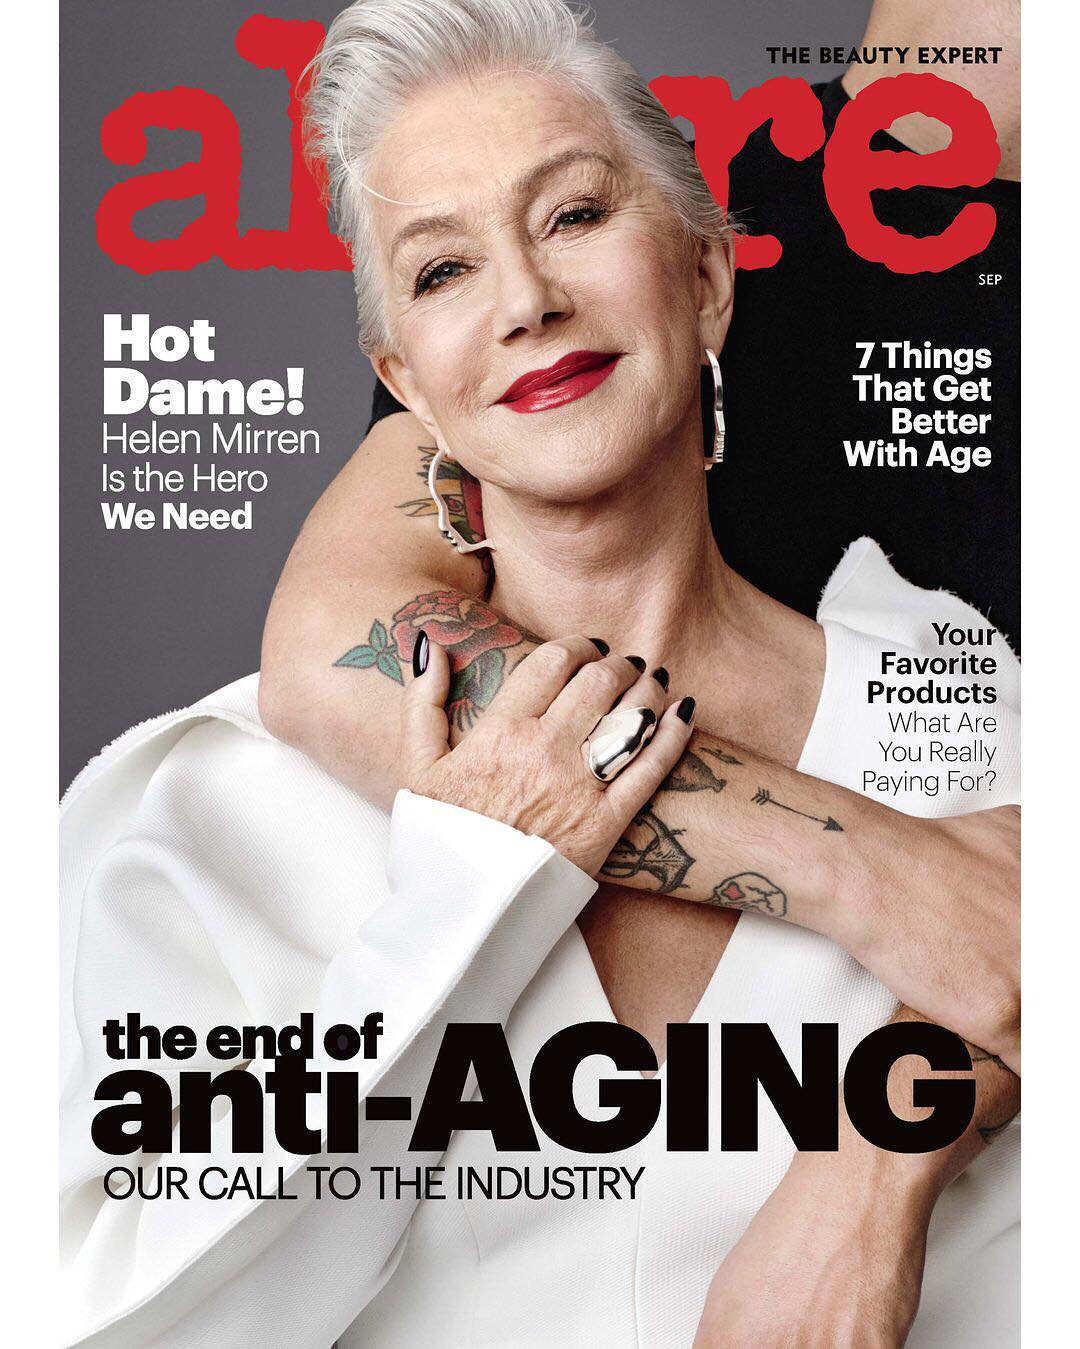 "<a href=""https://style.nine.com.au/2016/11/04/14/14/women-who-never-age/57"" target=""_blank"" draggable=""false"">At age 72 Dame Helen Mirren</a> has long turned a blind eye to Hollywood beauty ideals, but the Oscar/Golden Globe/Tony/Emmy award winner has confessed that in her youngers years she struggled with body confidence and image issues.<br /> <br /> ""It was the time of Twiggy, and I did not look like a twig. My cheeks were too fat, legs were too short, breasts too big,"" Mirren told <em><a href=""https://www.allure.com/preview/story/598a21557e18900ad078d02f?status=draft&template=default&cb=720575?mbid=social_instagram&utm_campaign=likeshopme&utm_medium=instagram&utm_source=www.instagram.com/p/BXxhCDXBewJ/&utm_content=www.instagram.com/p/BXxhCDXBewJ/"" target=""_blank"" draggable=""false"">Allure.</a></em><br /> <br /> The English actress stars on the cover of the September issue of <em>Allure</em> magazine where she spoke candidly about how she never fitted into the leggy and emaciated beauty standards of the '60s.<br /> <br /> ""I fell into the cliché of sexiness: blonde hair, tits, waist, which I hated at the time because it was not fashionable. You had to be thin and have a cigarette and only wear black. And I just never fit into that look,"".<br /> <br /> Now the Hollywood heavyweight who has been referred to as a sex icon for over four decades wishes she could tell her younger self to ""f**k off.""<br /> <br /> ""It's hard to explain how difficult it is to overcome the culture. You become a voice in the wilderness. No one wants to listen,"" Mirren said.<br /> <br /> Click through to see the beauty evolution of Dame Helen Mirren."